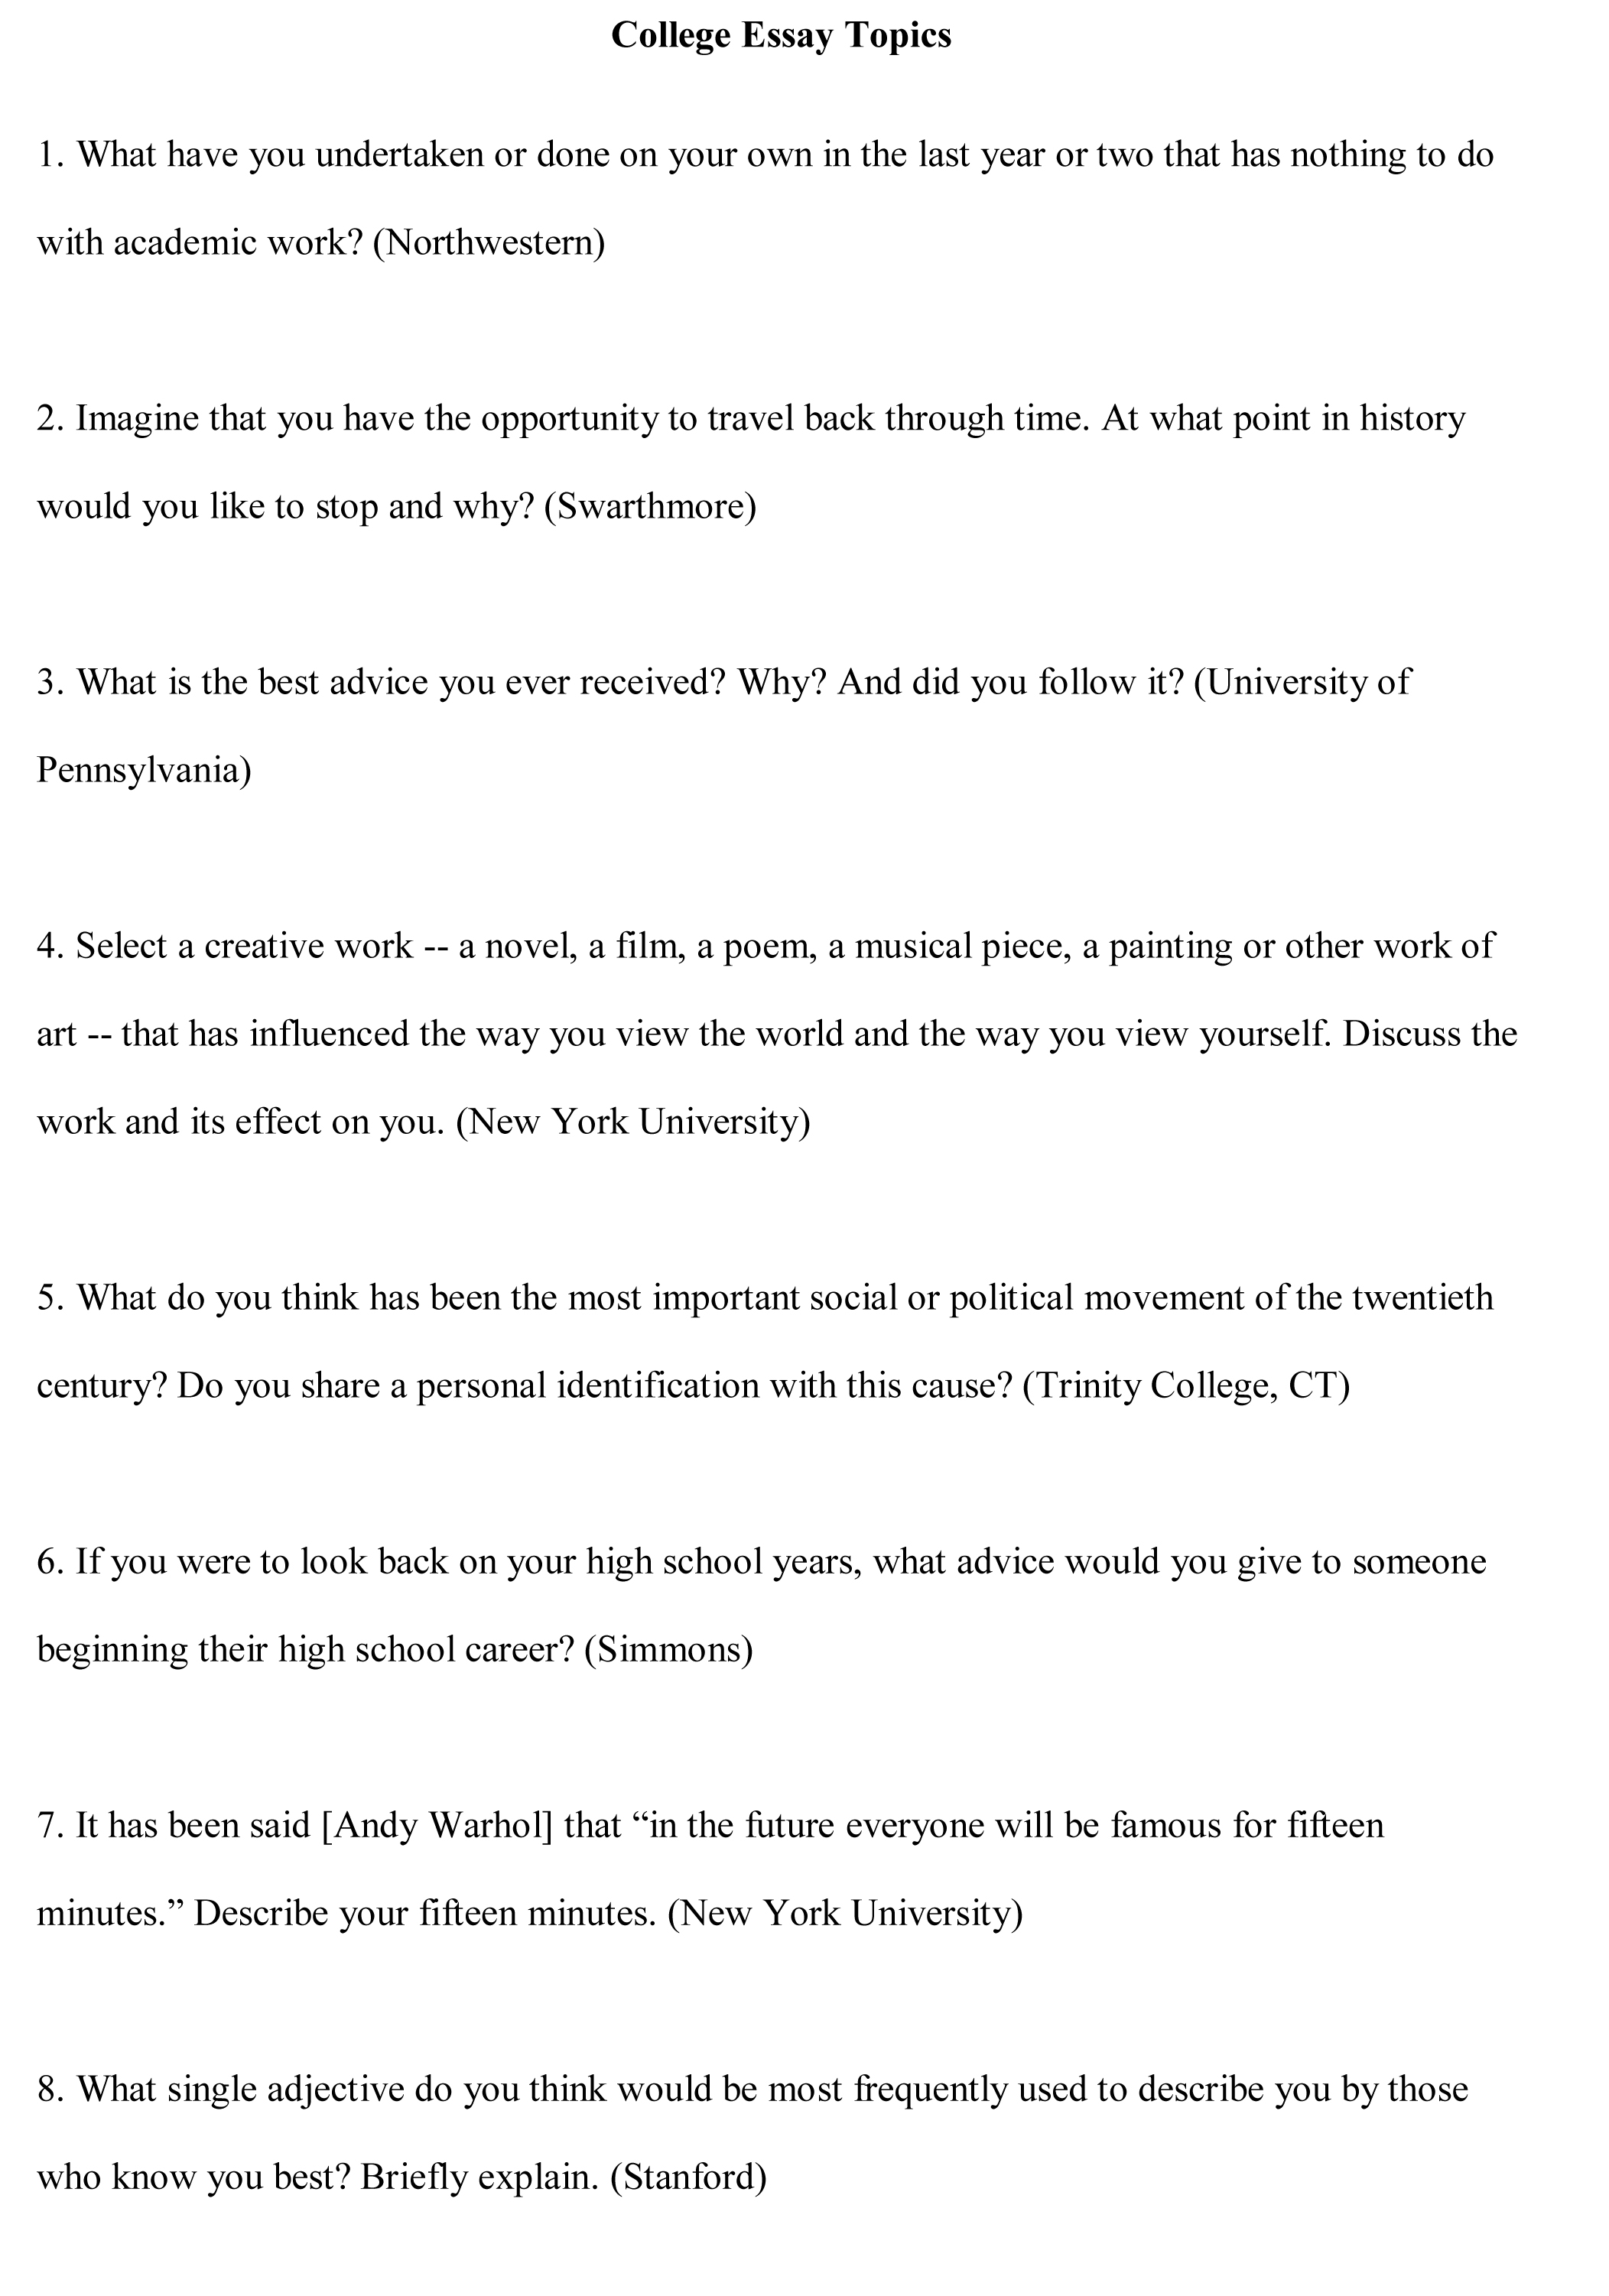 019 College Essay Topics Free Sample1 Example High School Dreaded Experience Full